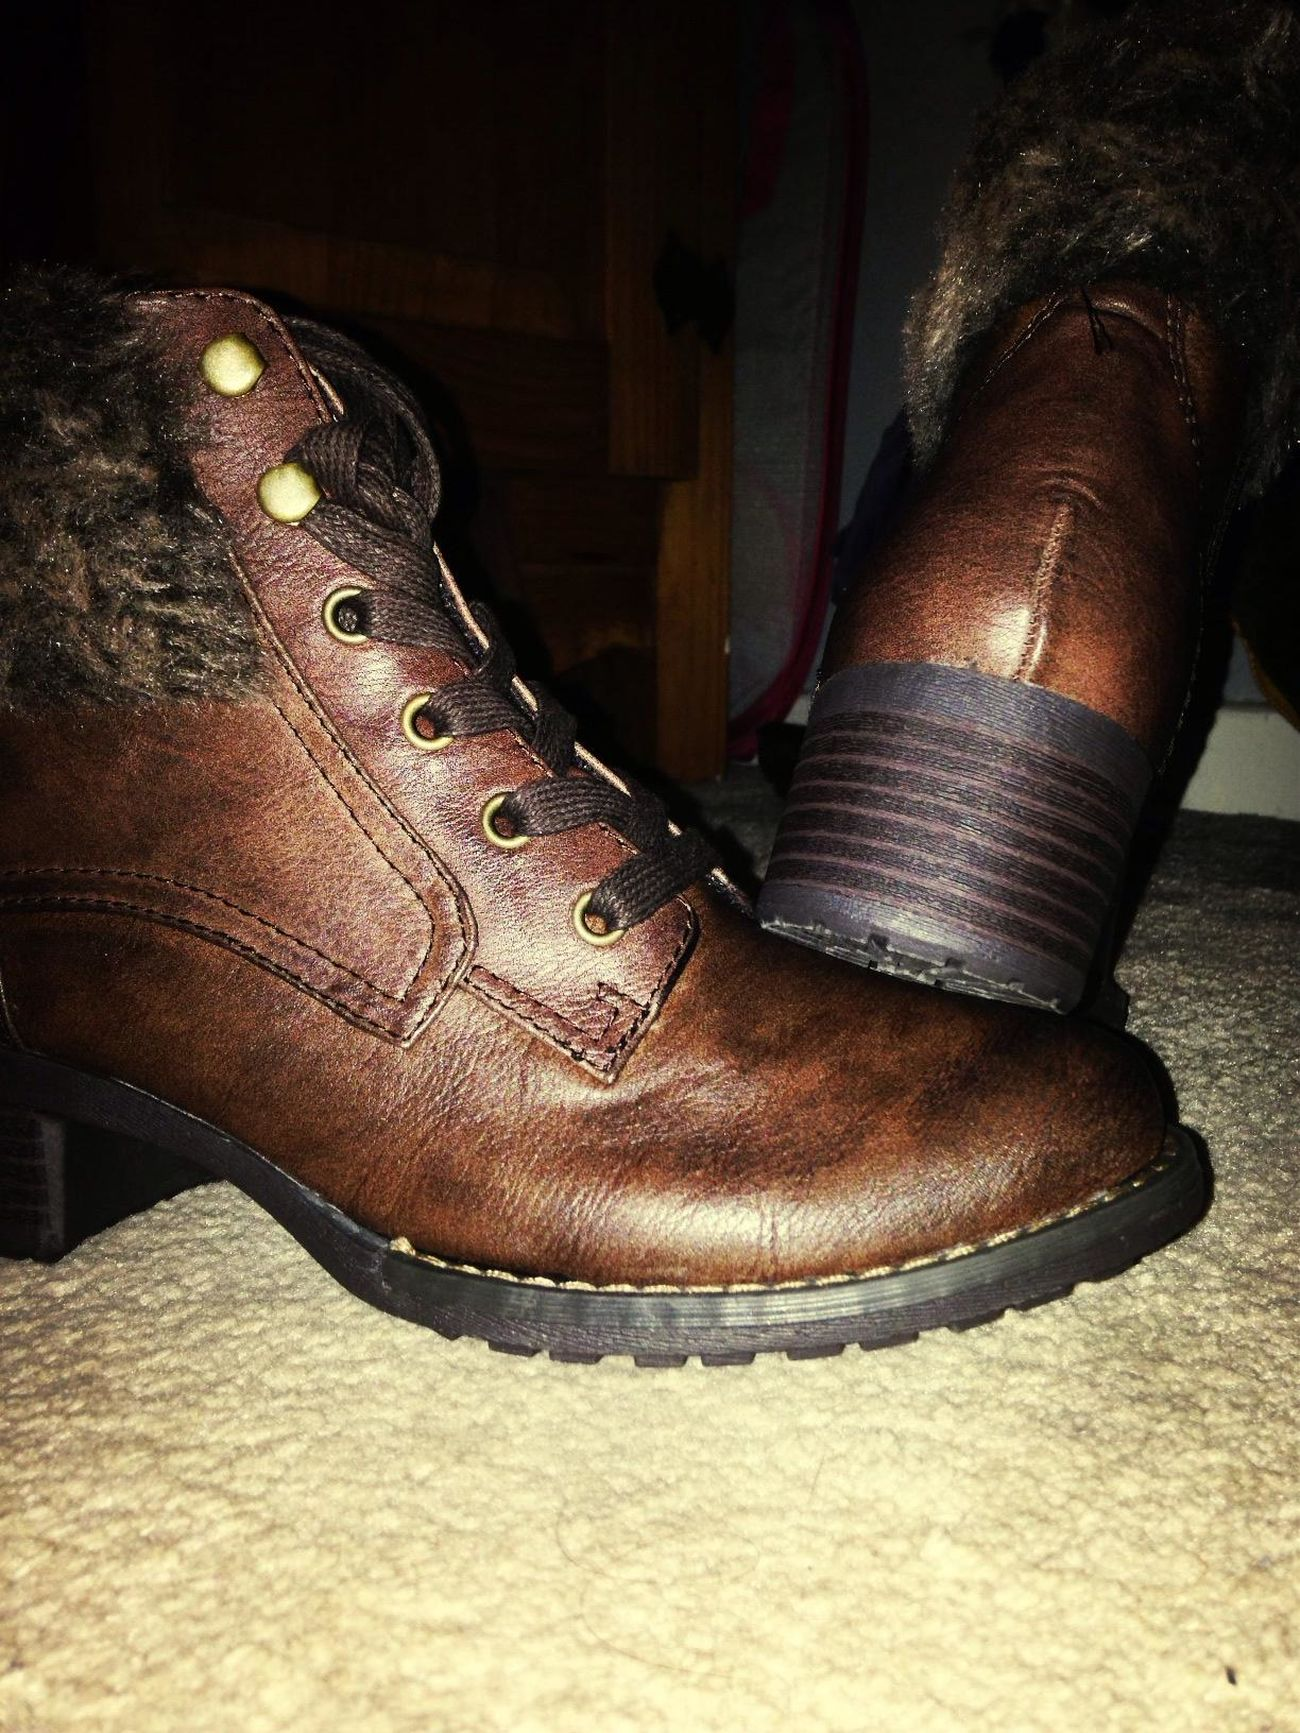 My New Boots I Love This Pic